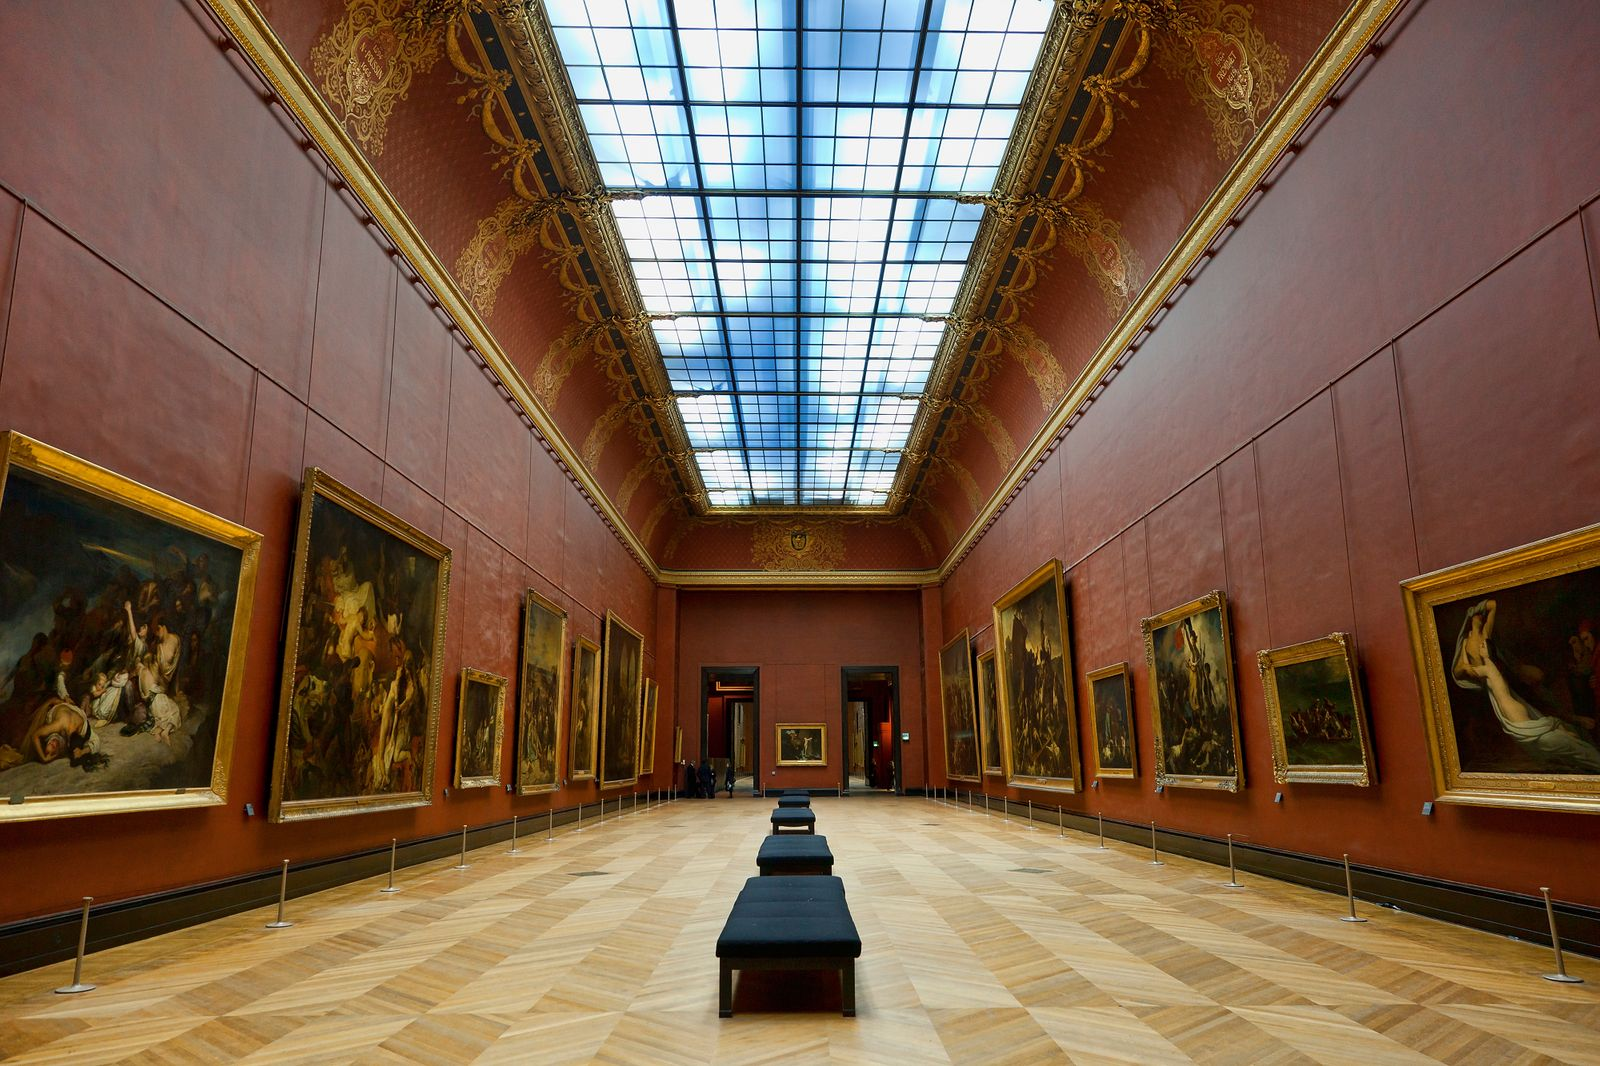 Salle Mollien in the Musee du Louvre